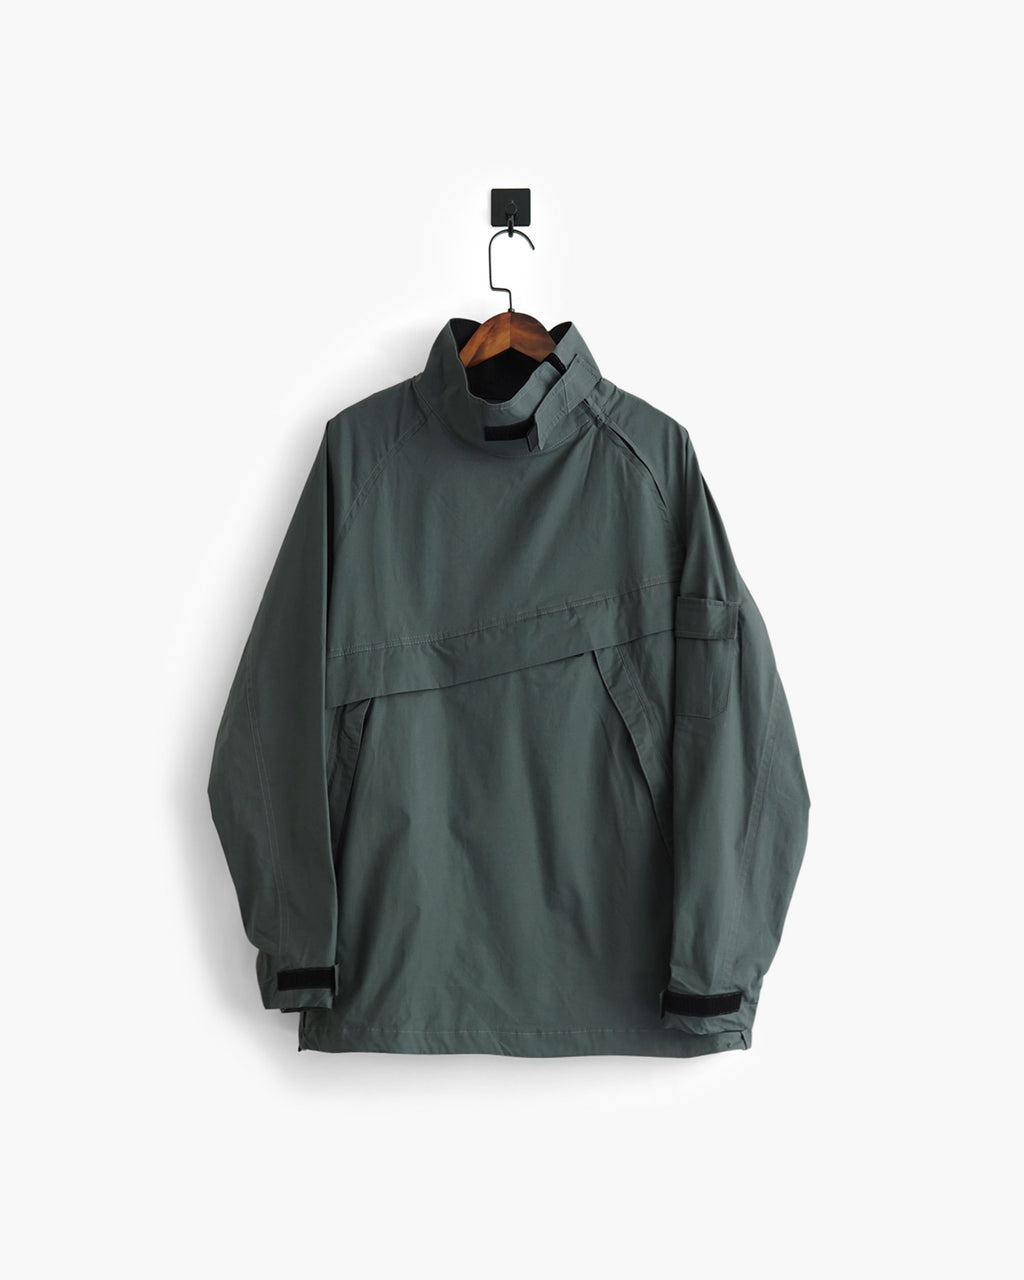 ROSEN-X Orion Anorak in Ripstop Cotton Sz 3